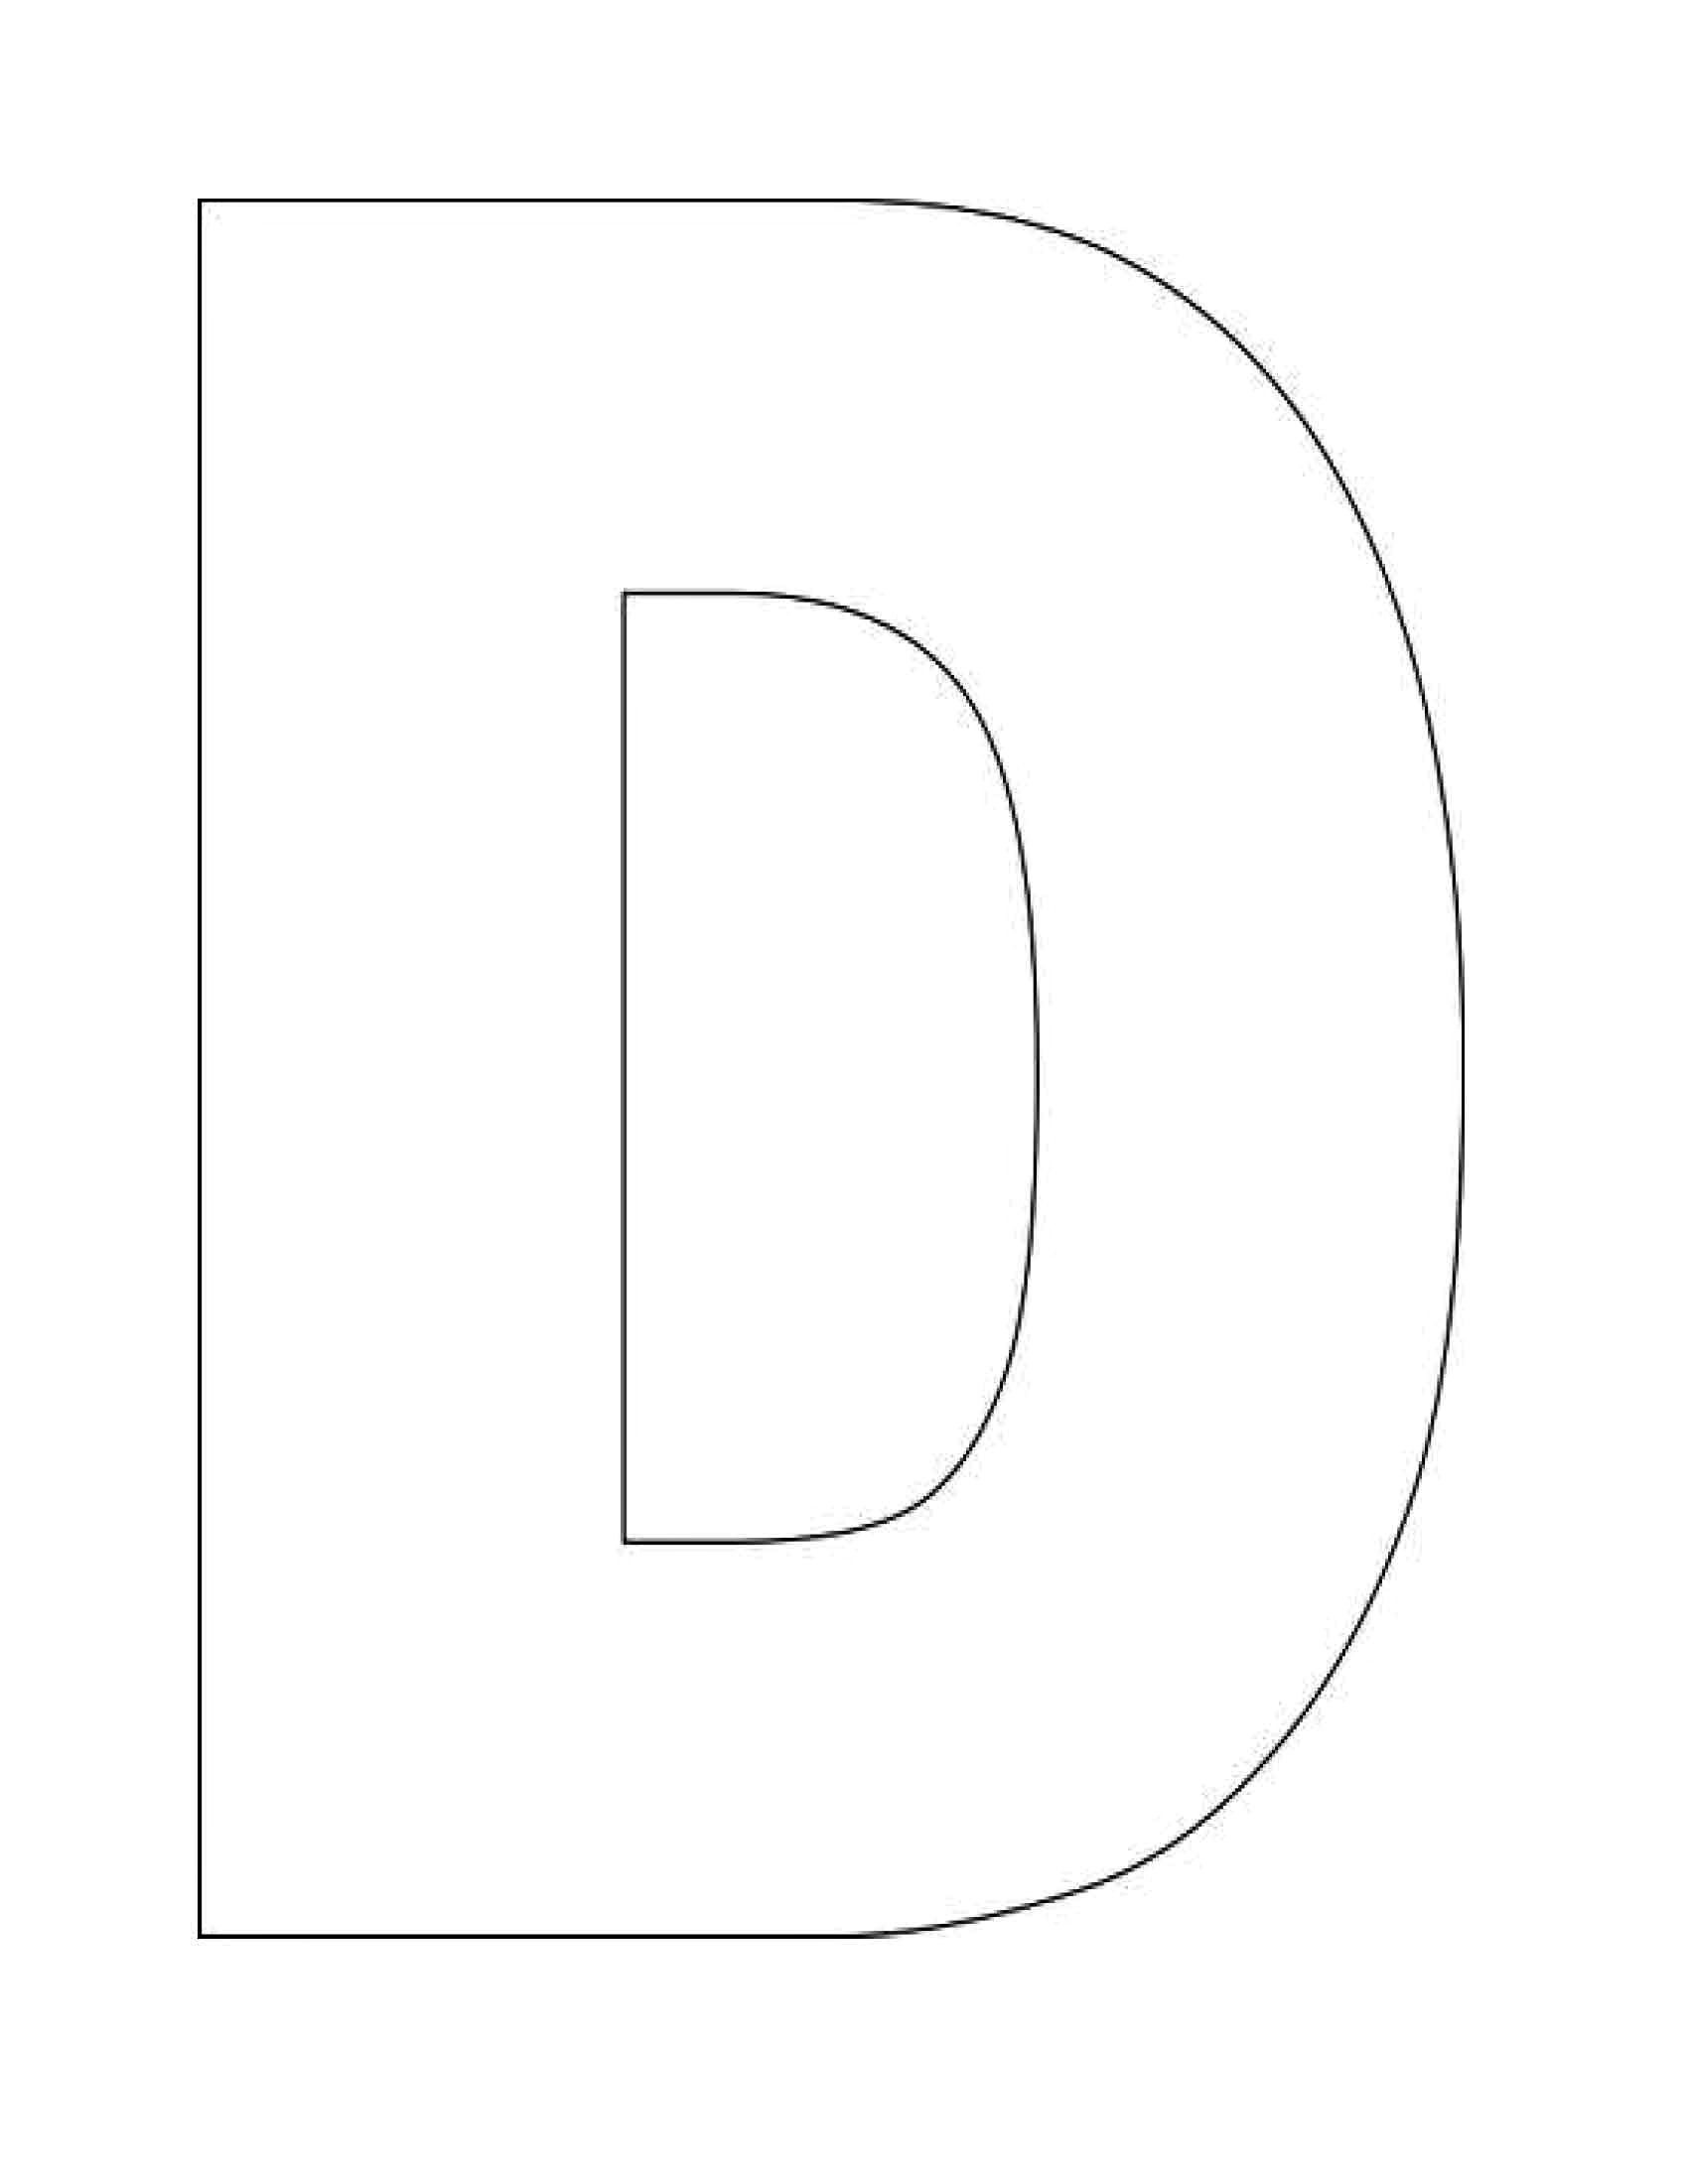 image about Letter Templates Printable referred to as Impression point for -Alphabet Letter Templates For Preschool